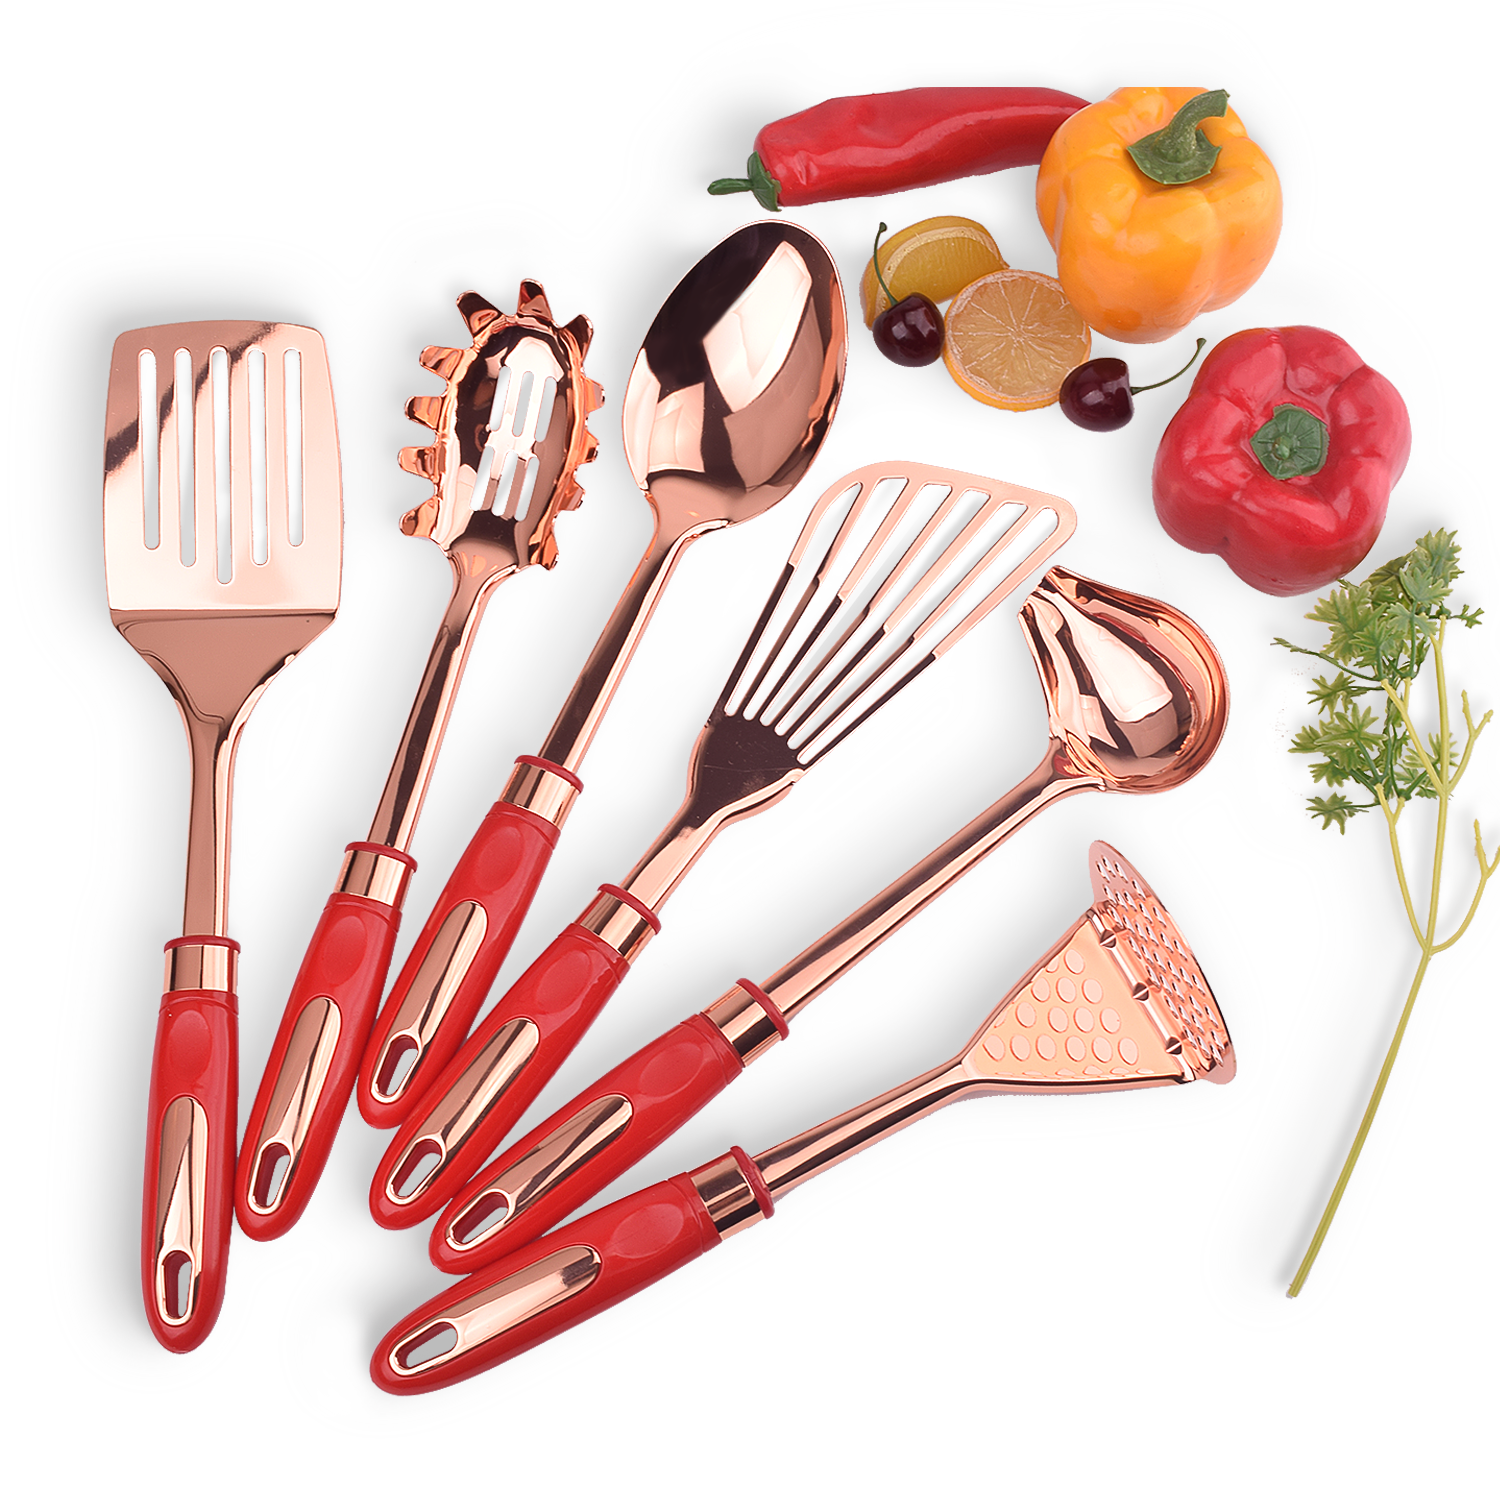 New Trend Copper Plated Stainless Steel Cooking Utensils Set